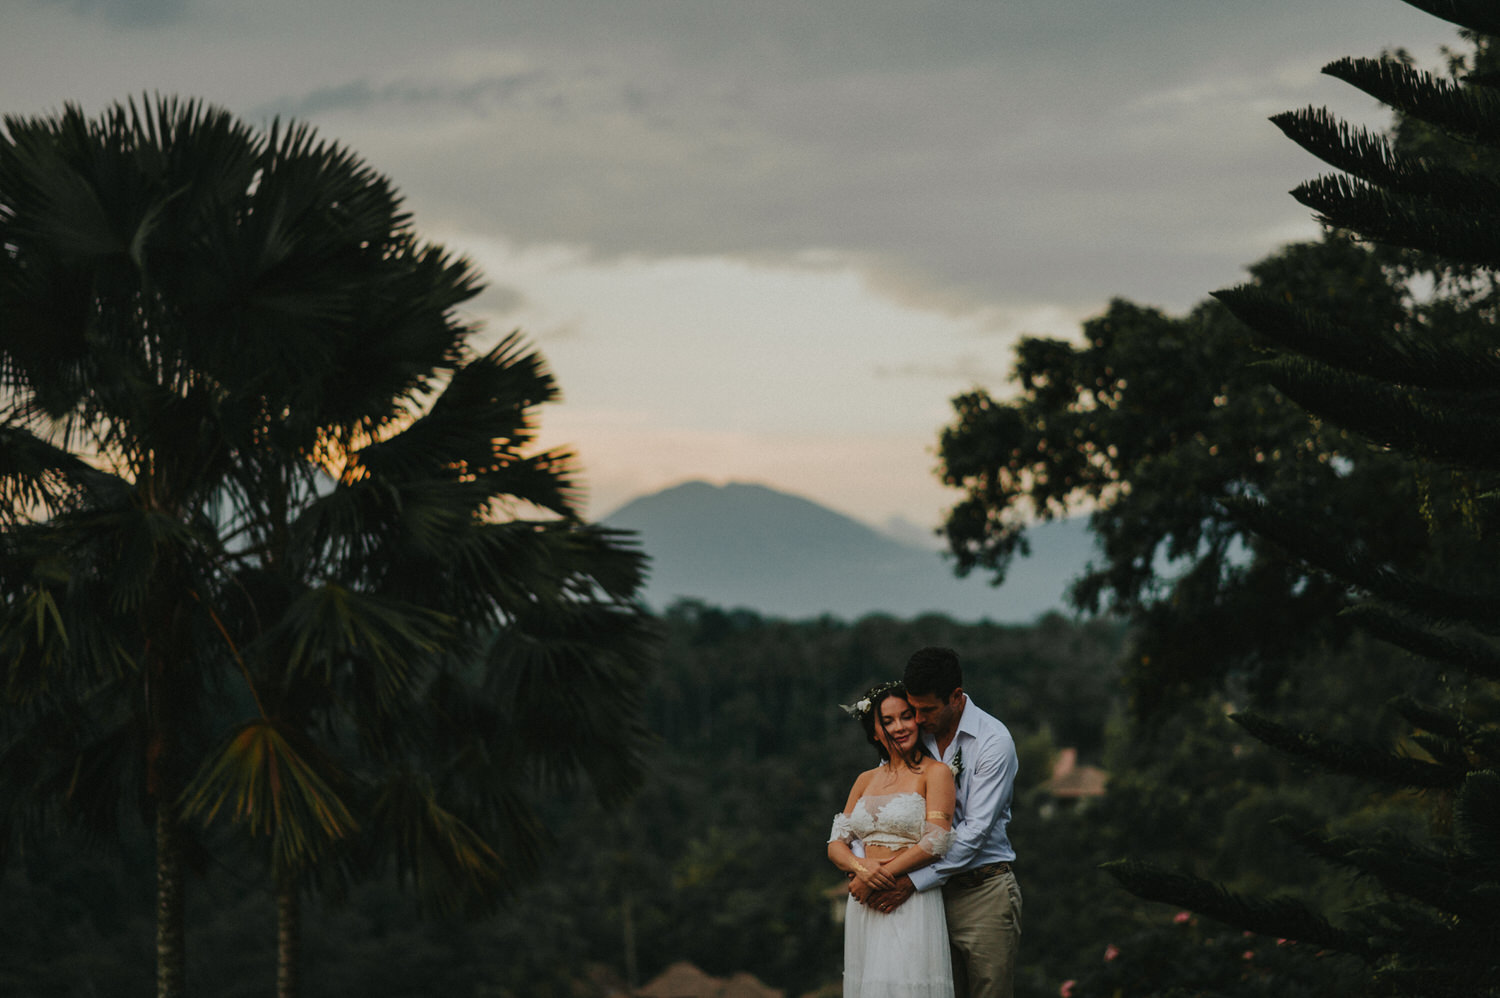 bali wedding - elopement - ubud wedding - diktatphotography - olga + Jason - 75